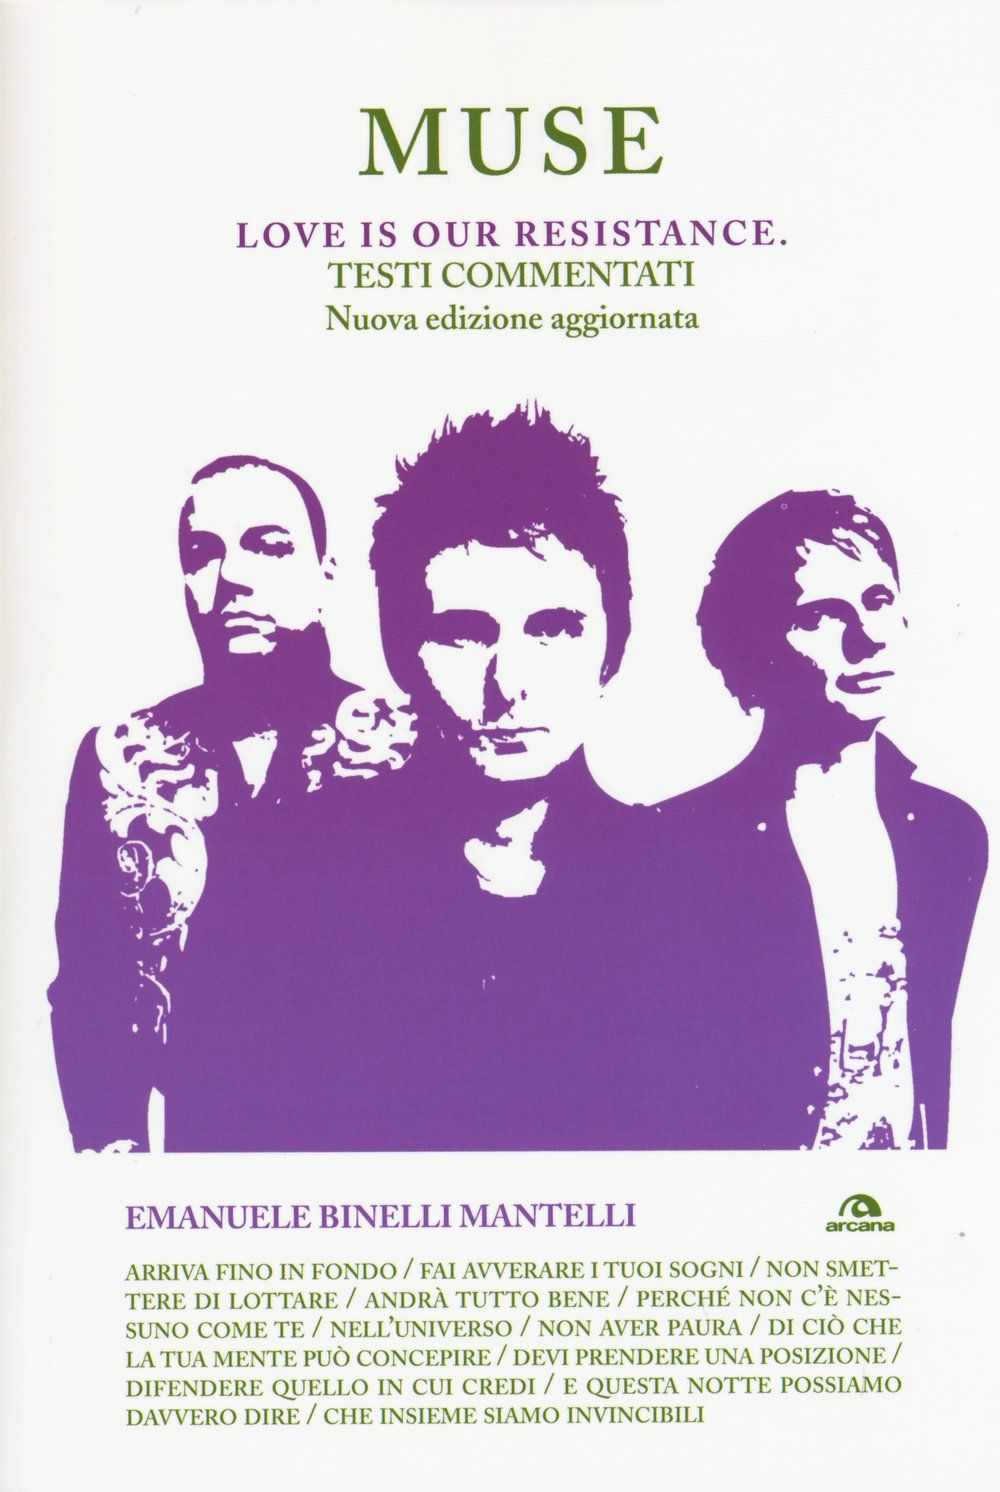 Muse Love Is Our Resistance Testi Commentati Love Muse Resistance Commentati Testi Testi Delle Canzoni Libri